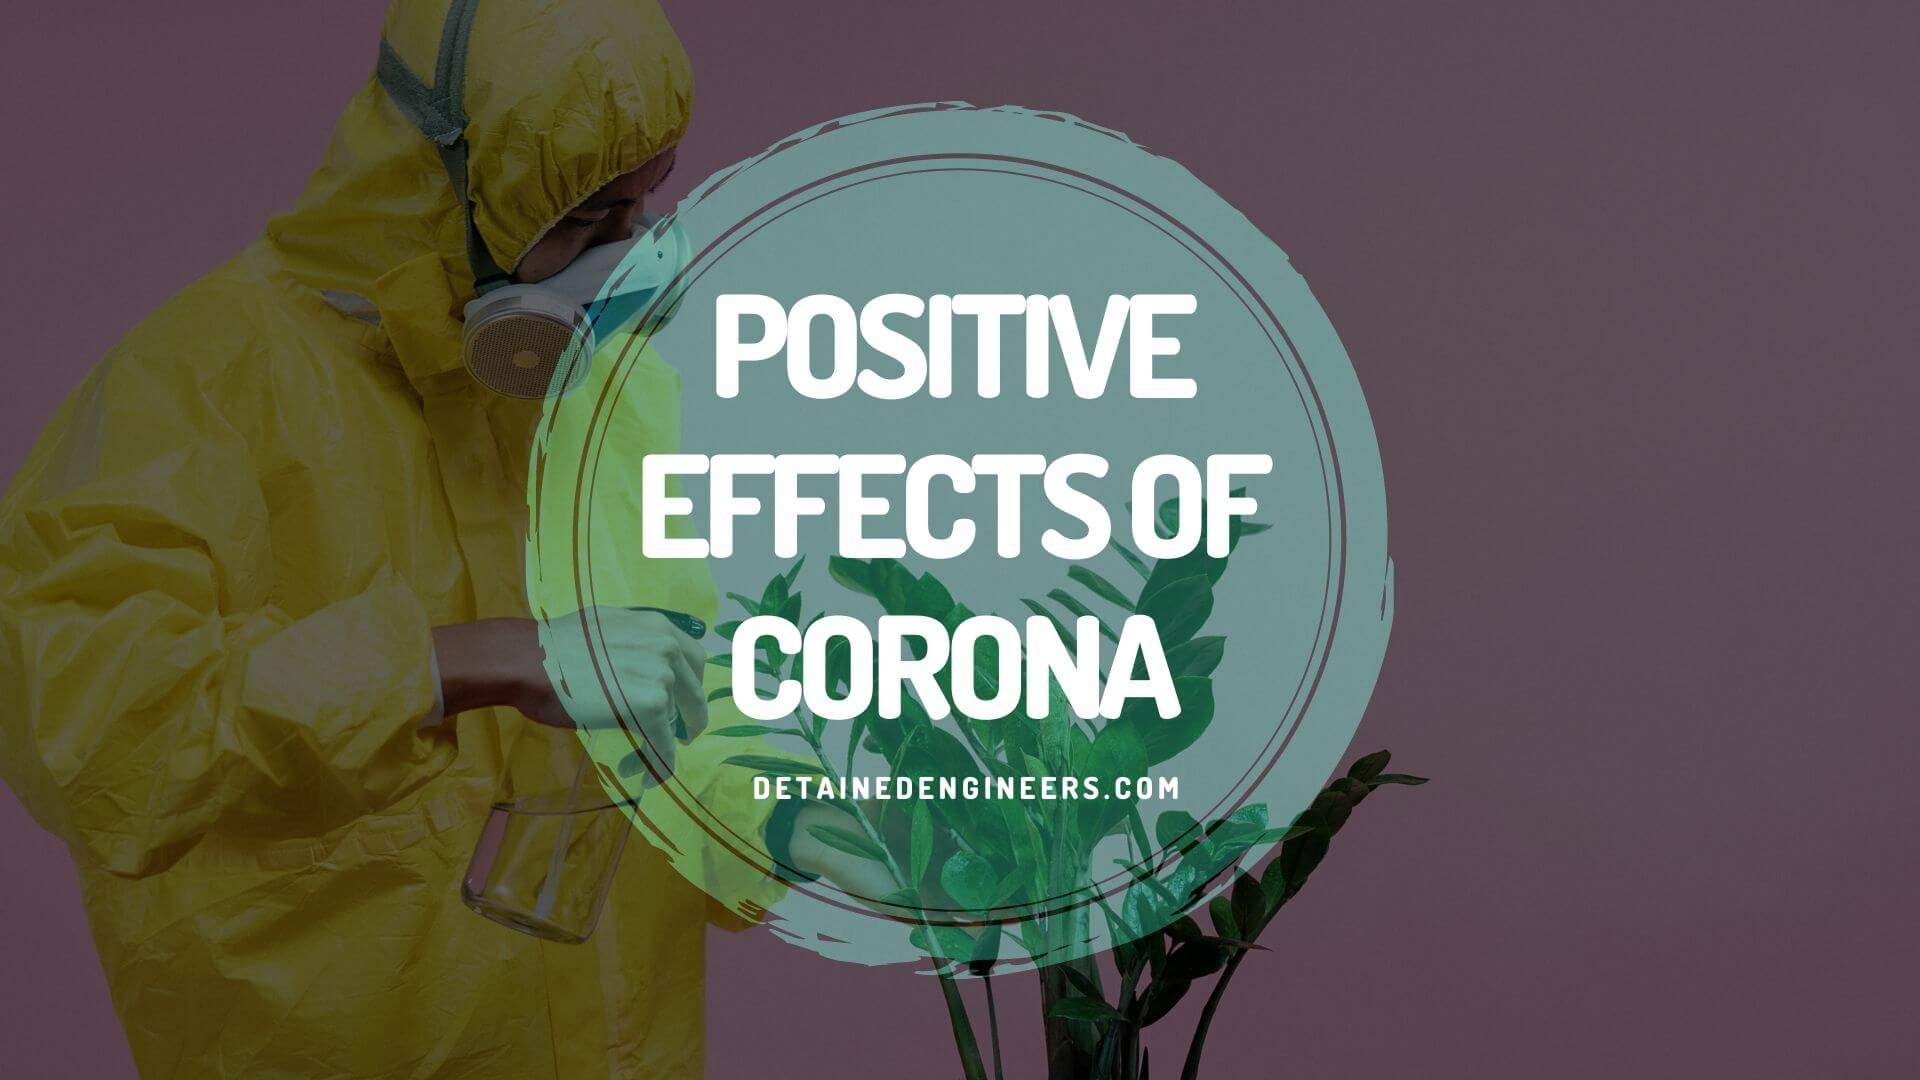 Positive effects of Corona